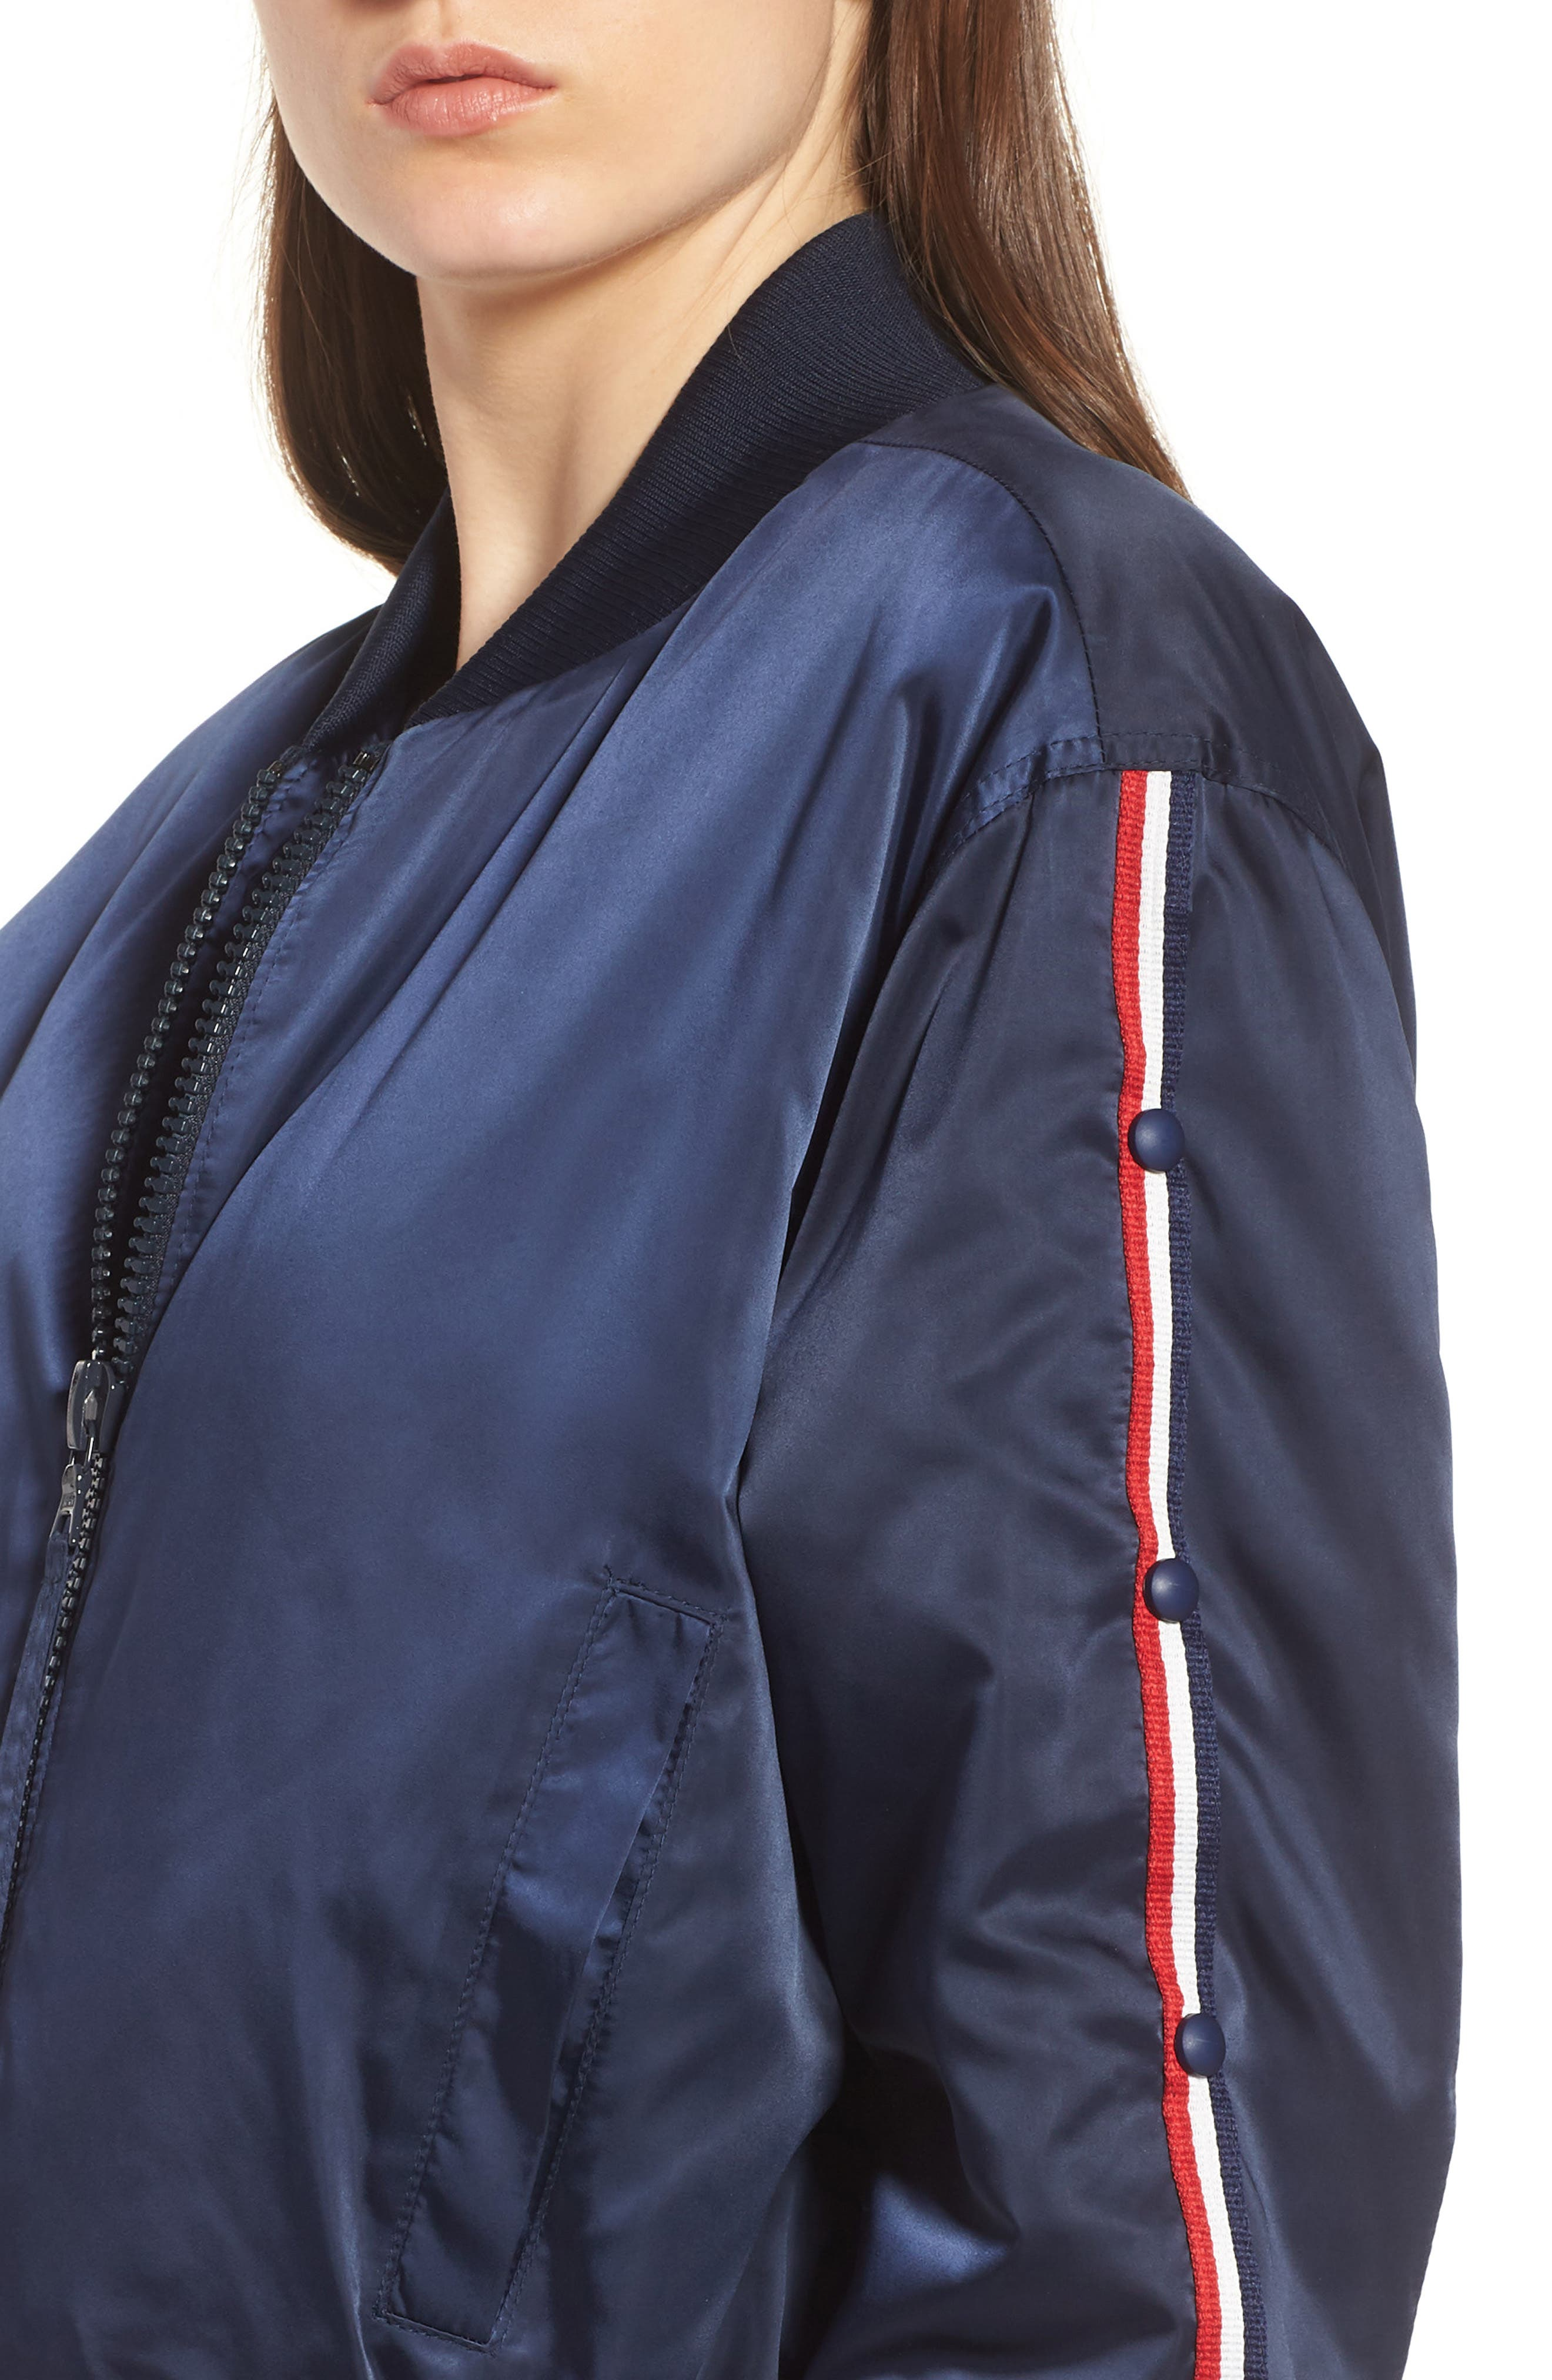 Bomber Jacket,                             Alternate thumbnail 4, color,                             Navy/ Red/ White